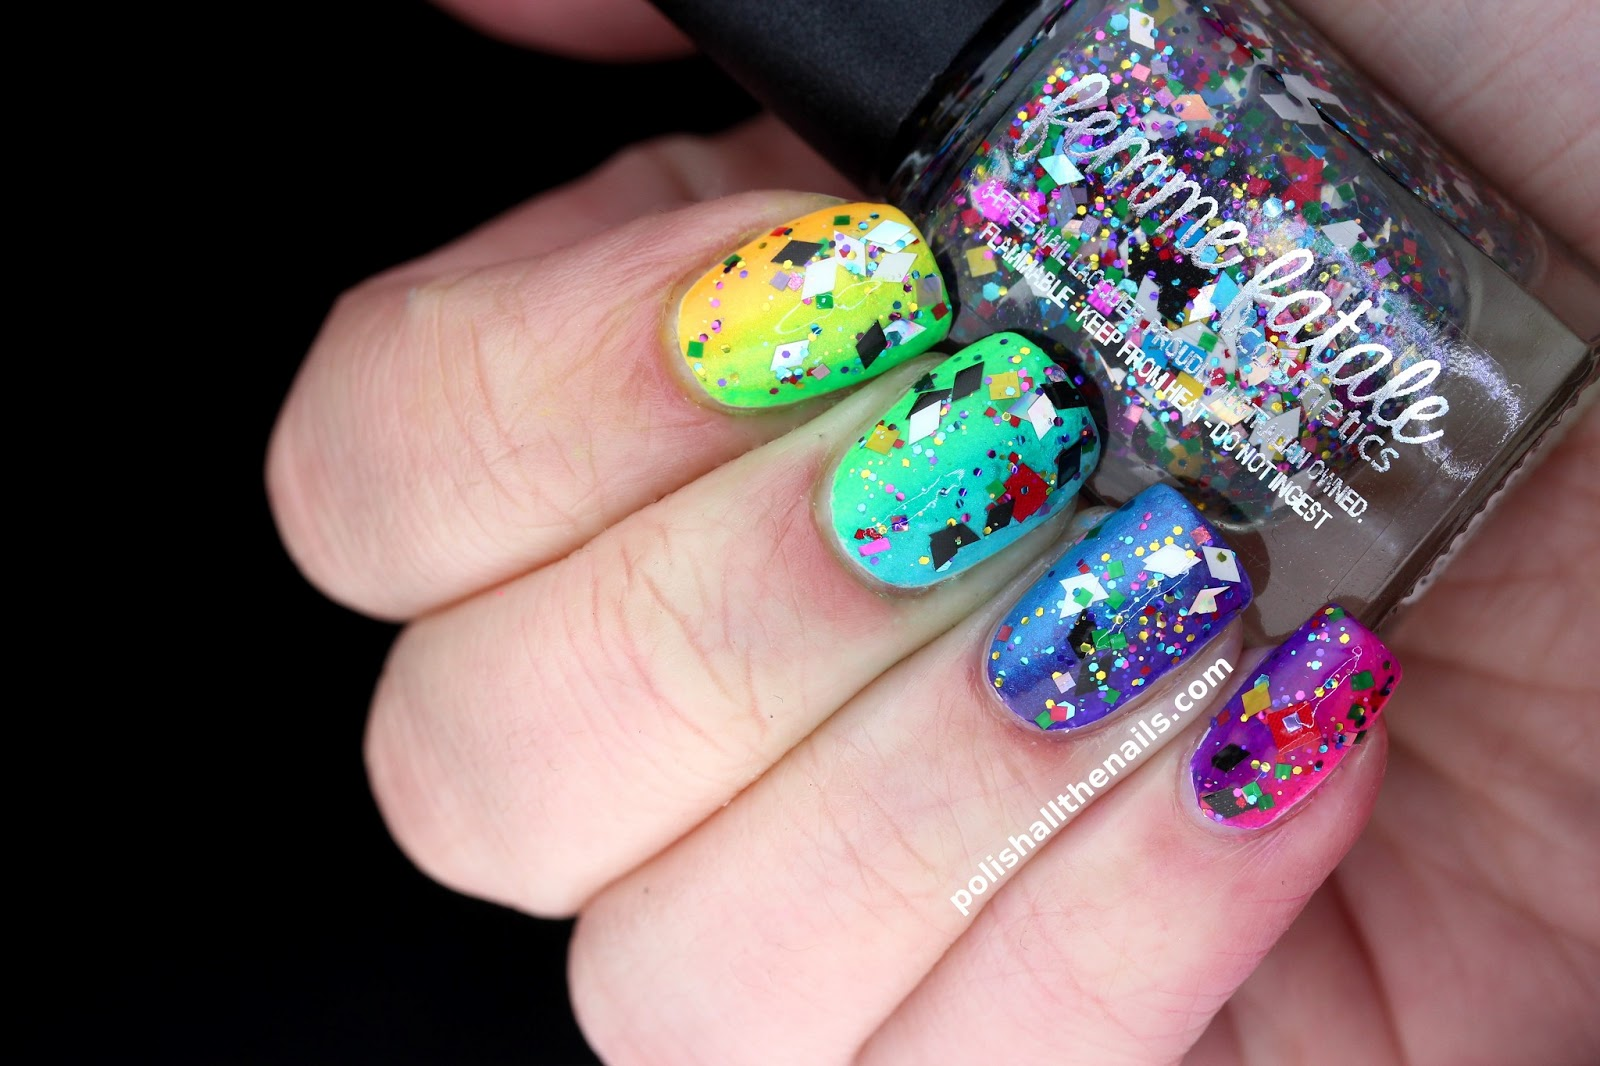 Femme Fatale Party Grenade Is So Packed Full Of Square Diamond Hex Matte Shiny Holo And Misc Glitter I Can T Even Find Words To Describe How Amazing It